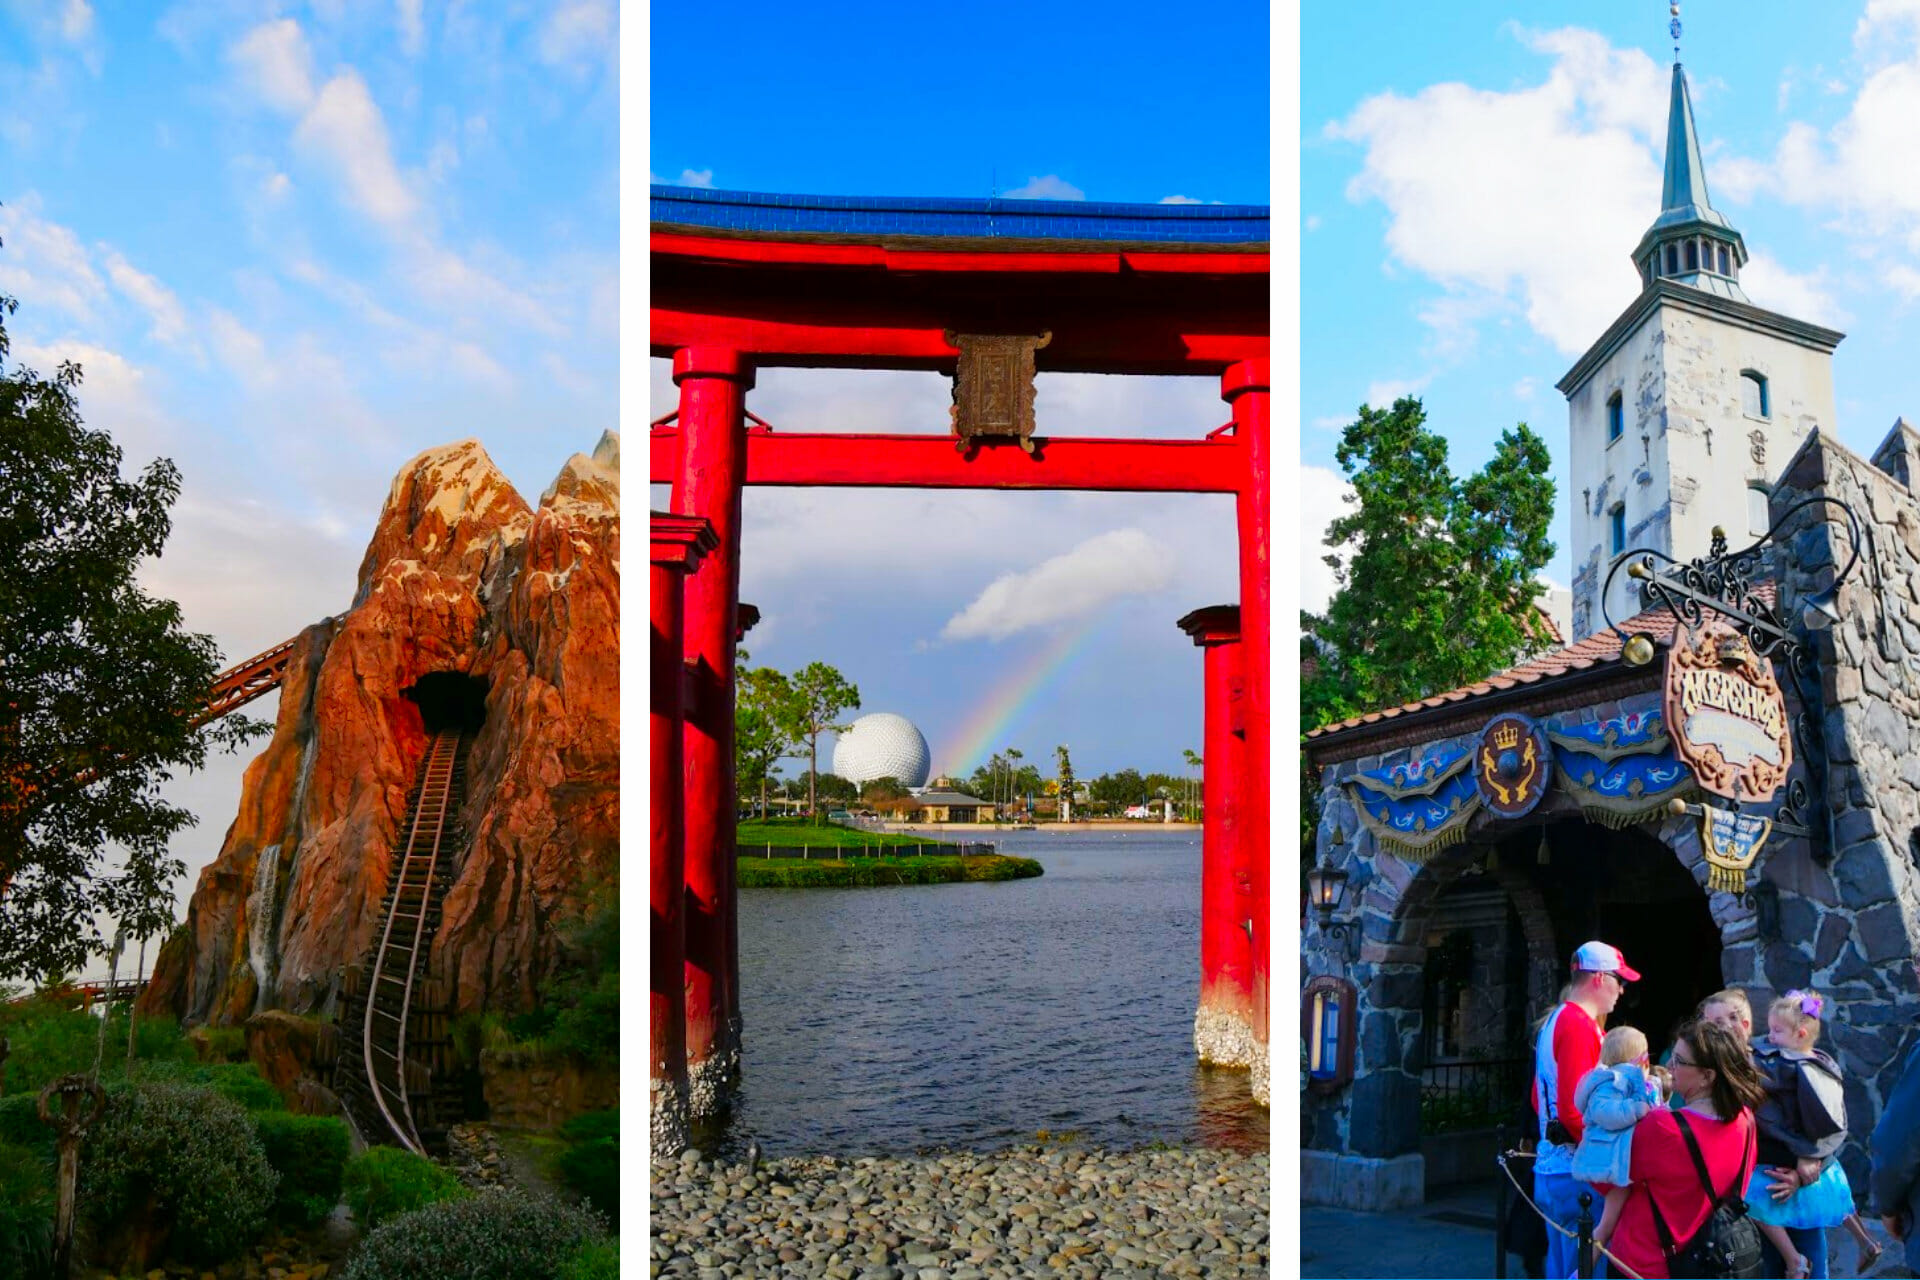 Best Rides to Fastpass at Epcot